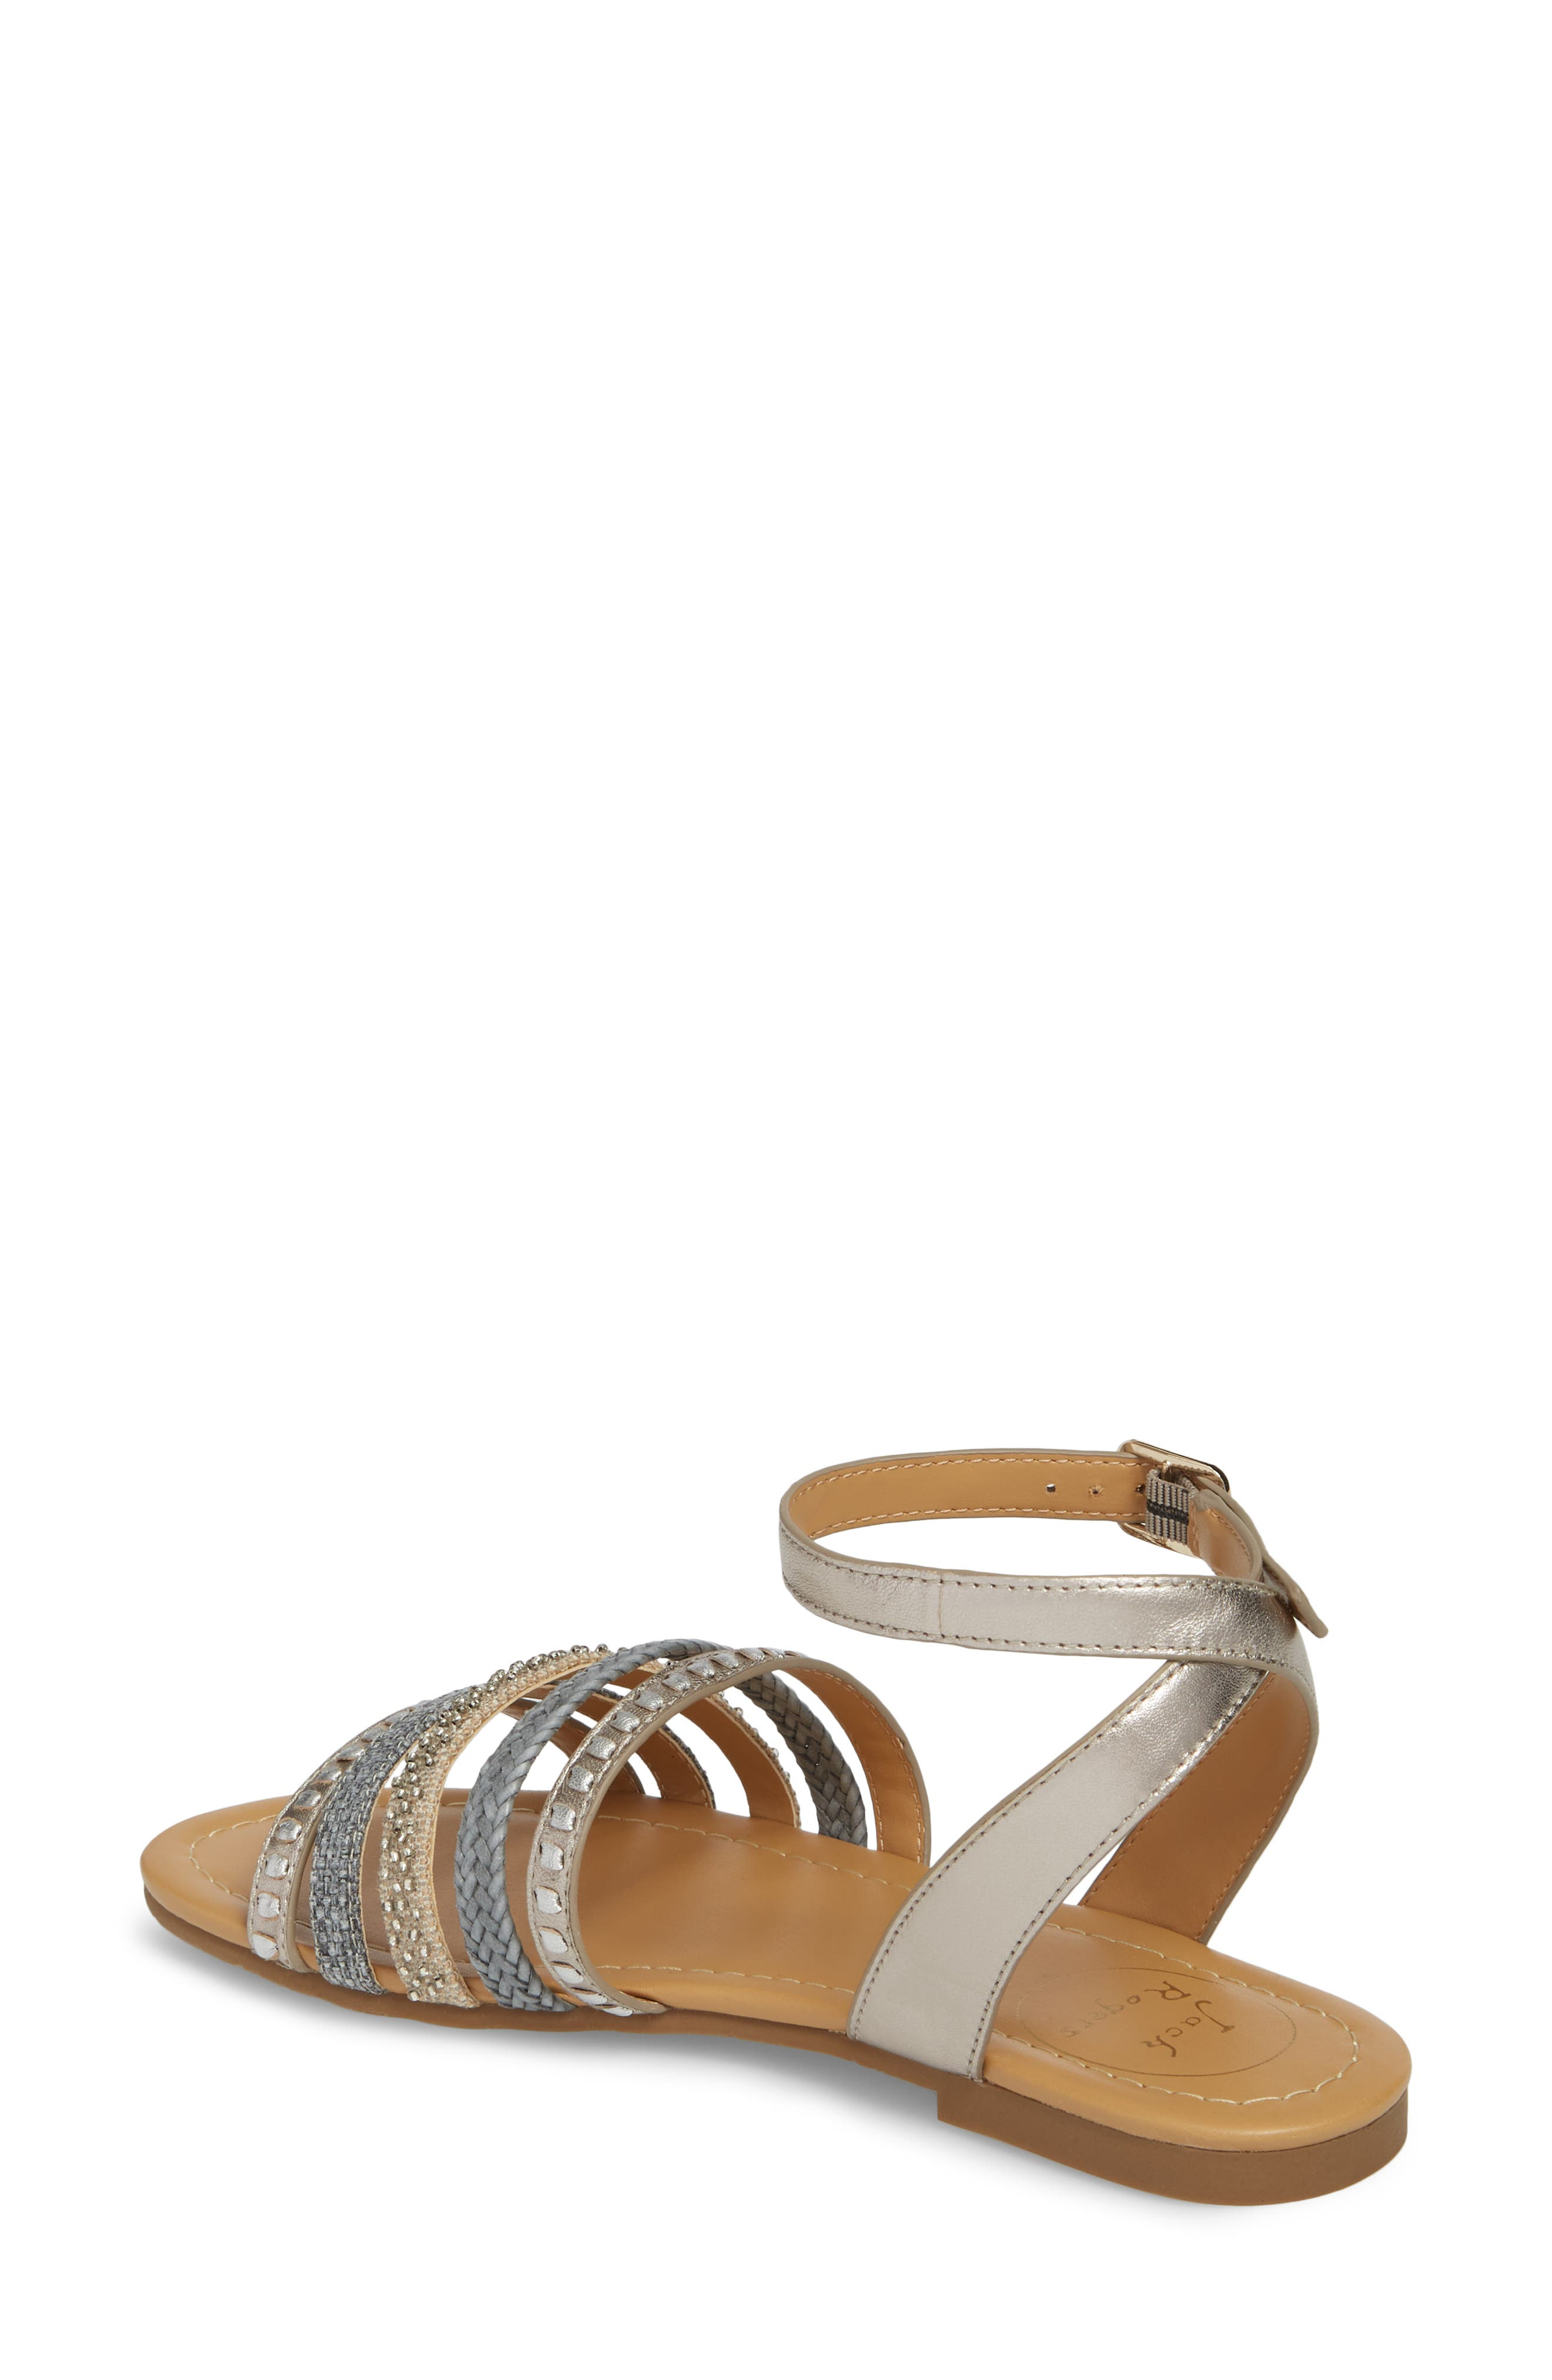 Hannah Braided Embellished Sandal,                             Alternate thumbnail 2, color,                             040